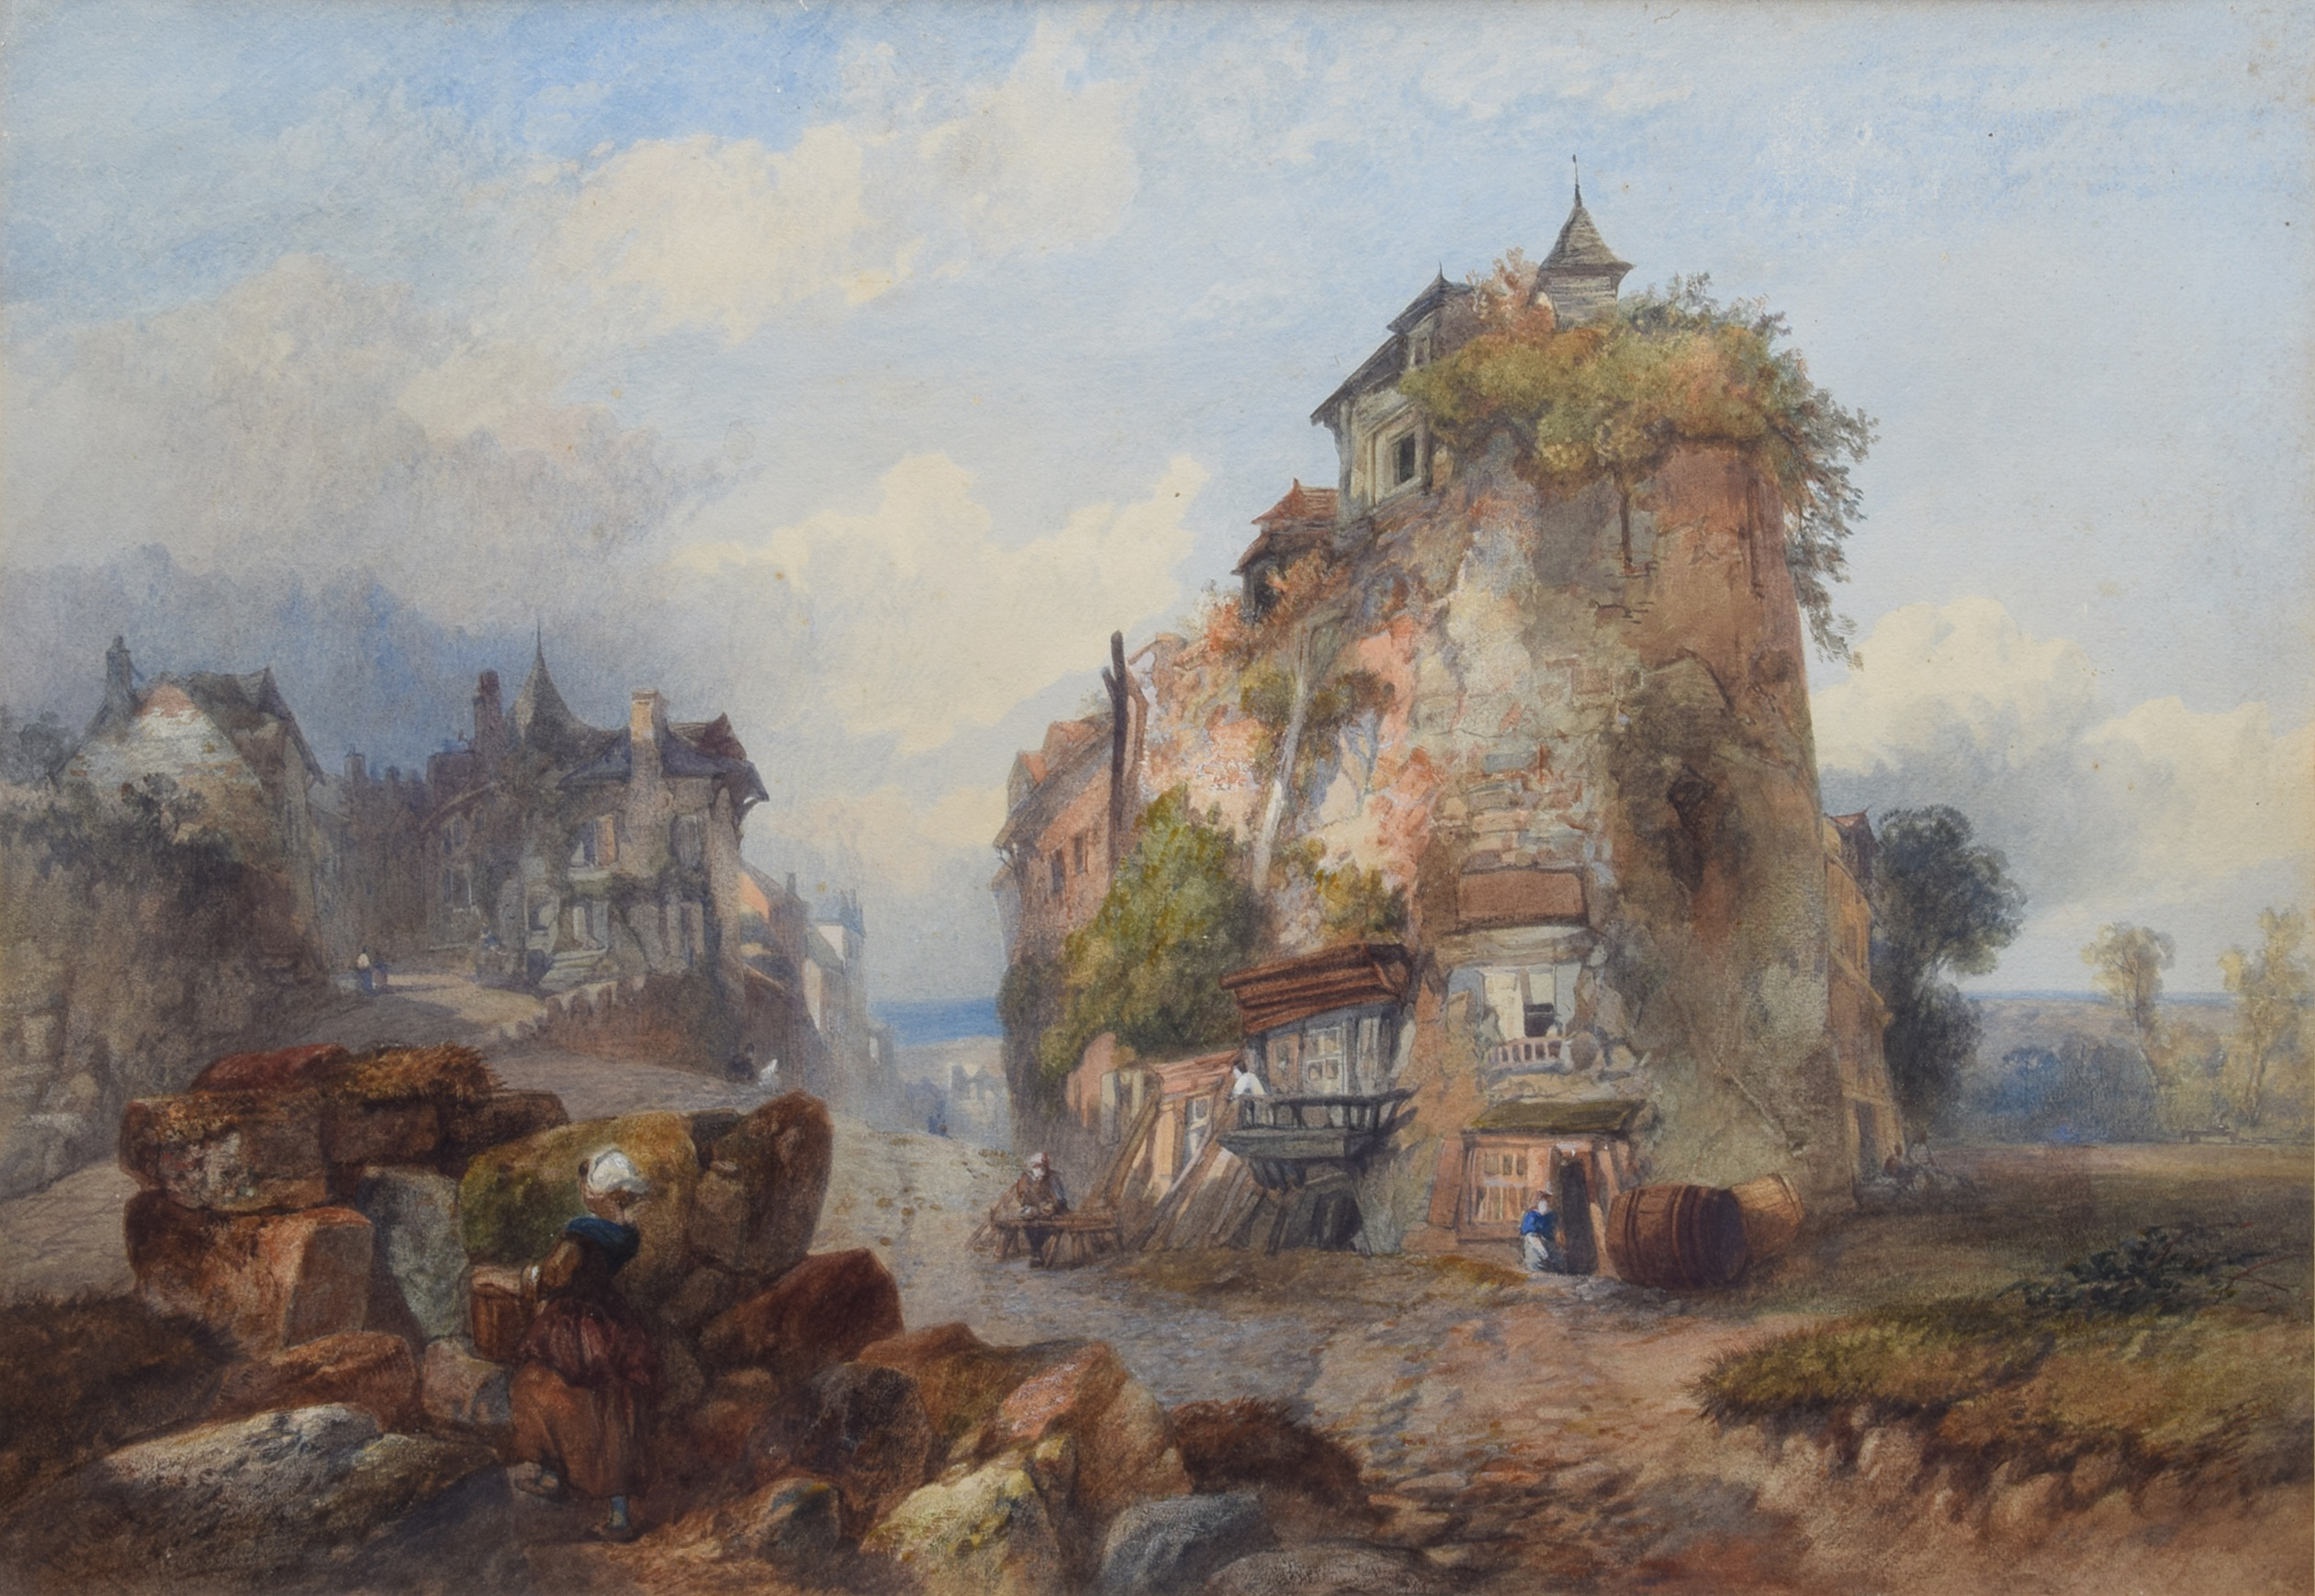 Lot 21 - Yartland, 19th century, Continental village scene with figures, signed and dated 1887,